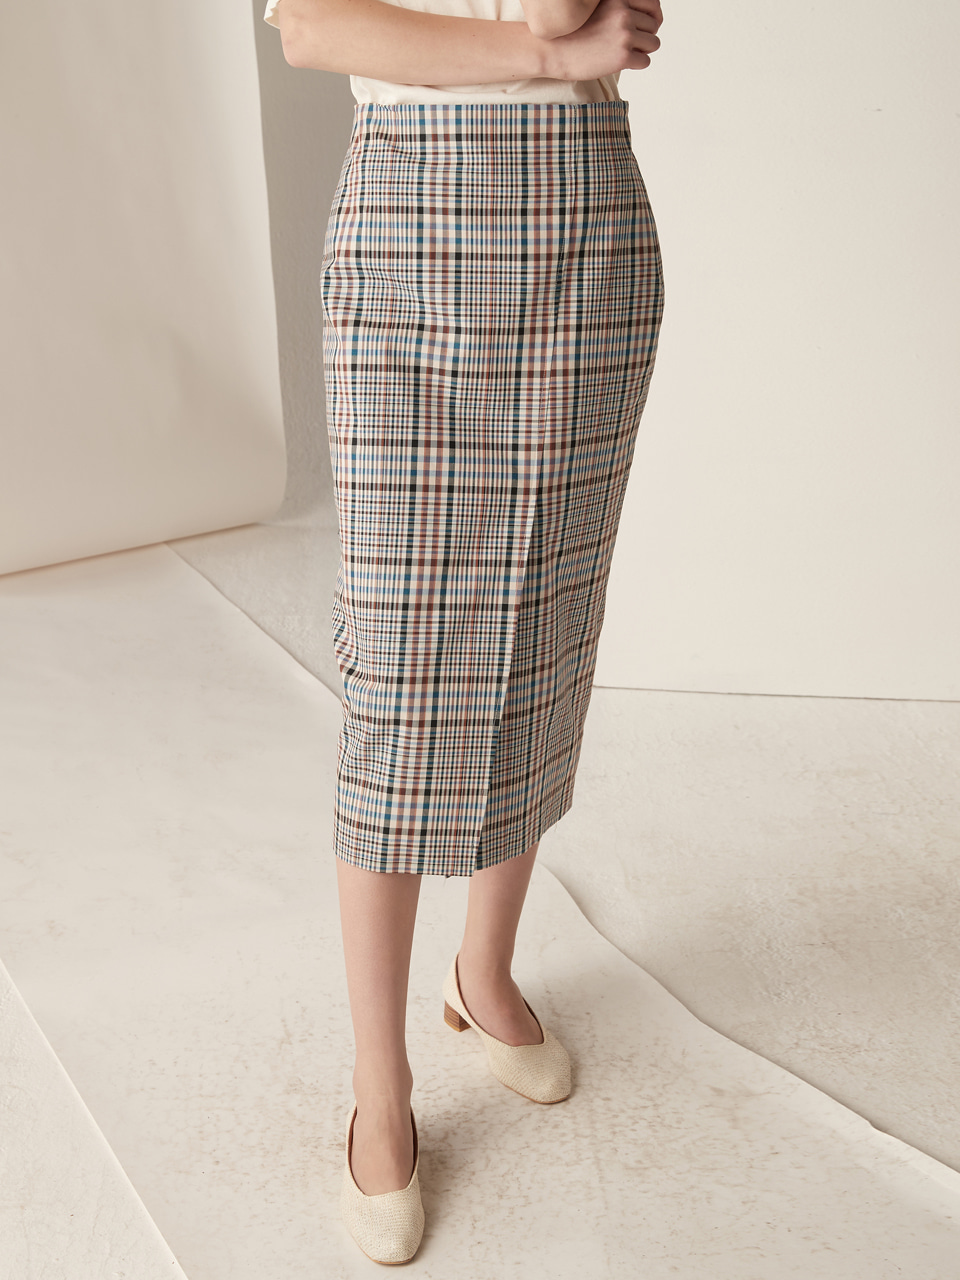 H-line slit skirt - check